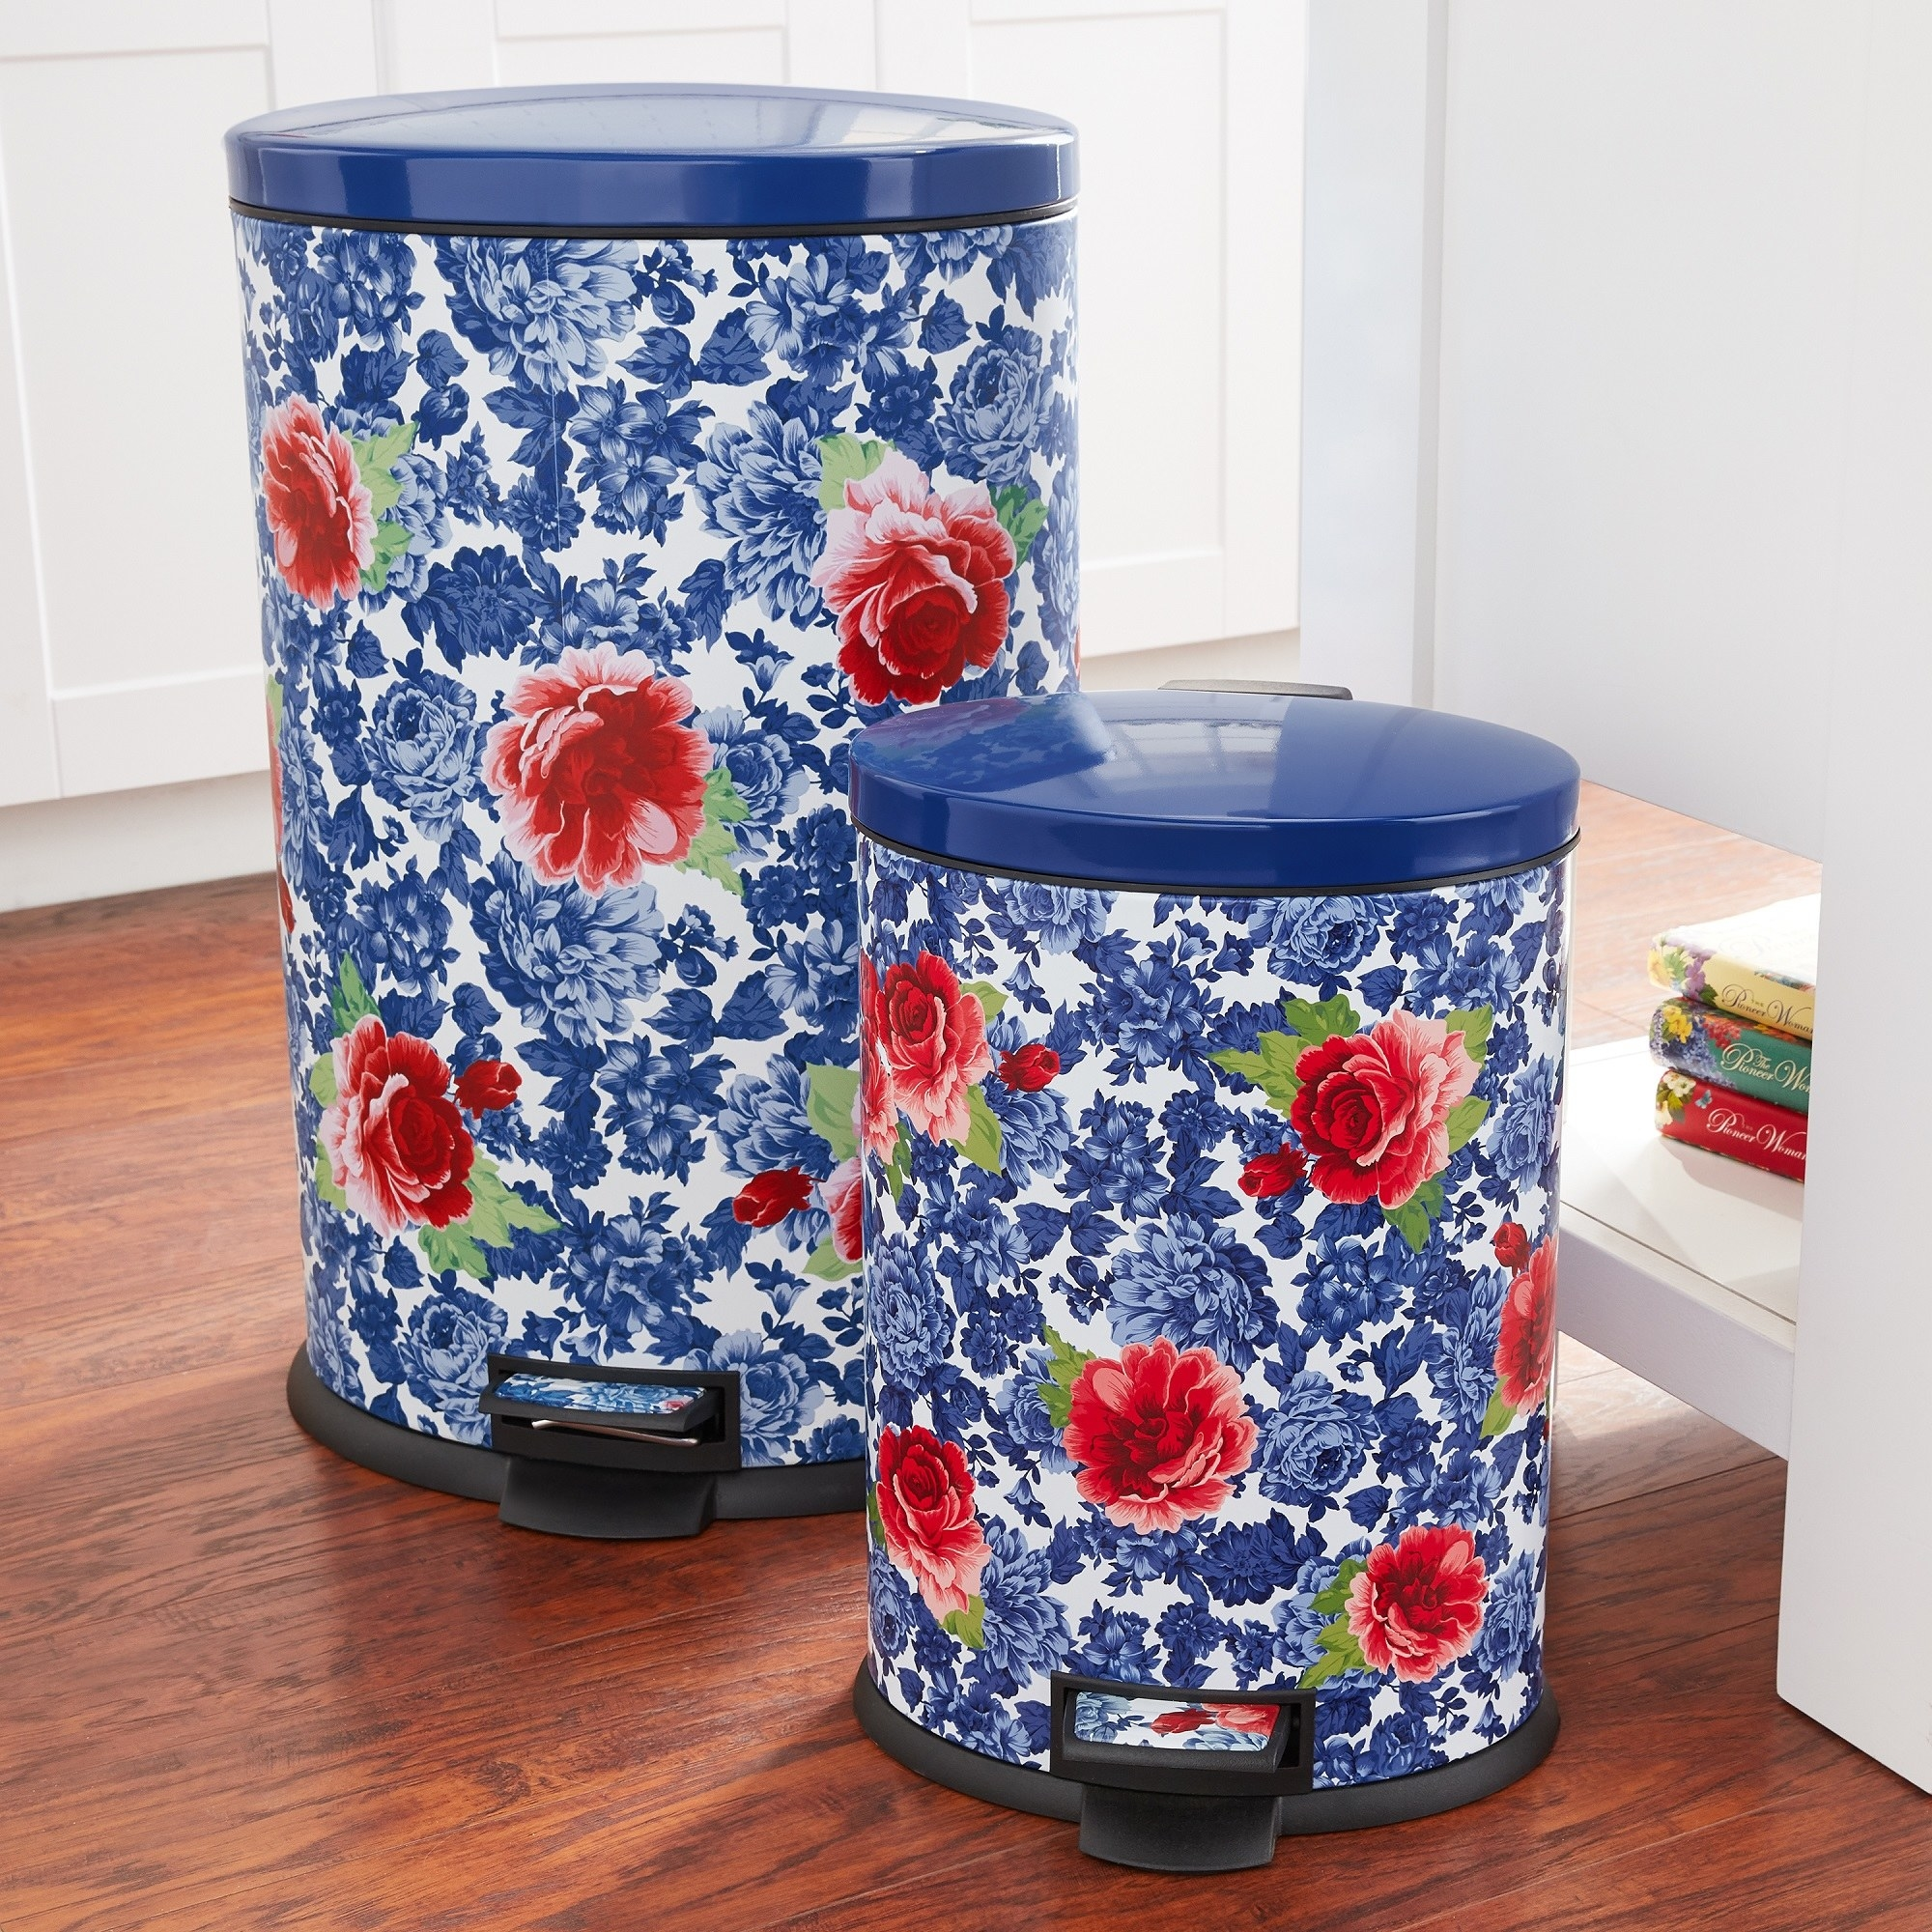 A set of two stainless steel garbage cans